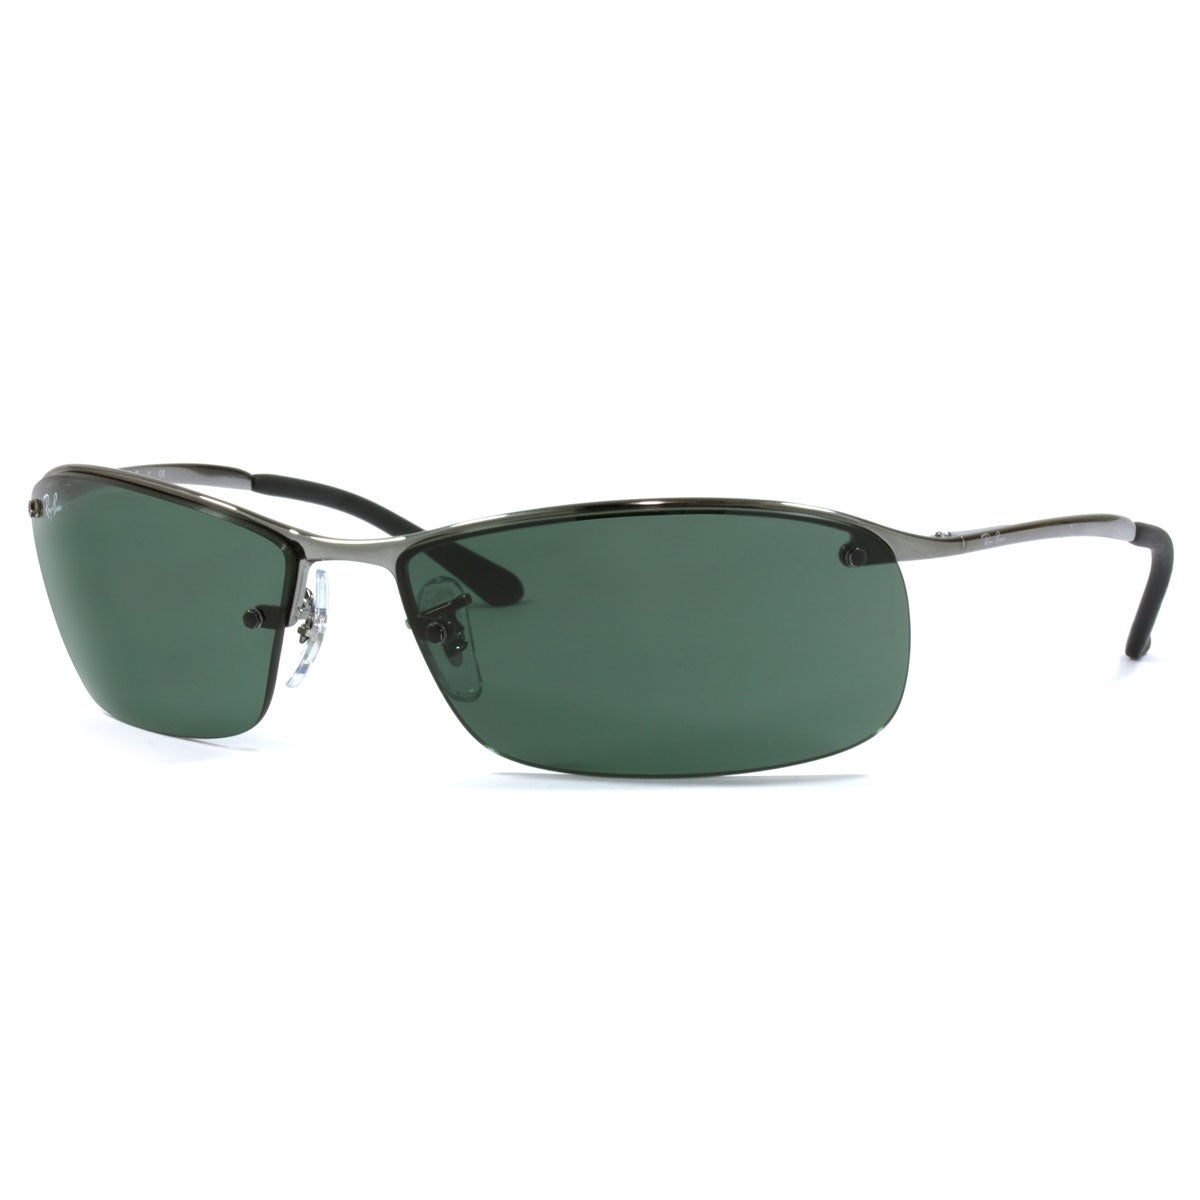 b770fd7403a Shop Ray-Ban RB3183 004 71 Gunmetal Frame Green Classic 63mm Lens  Sunglasses - Free Shipping Today - Overstock - 14327881